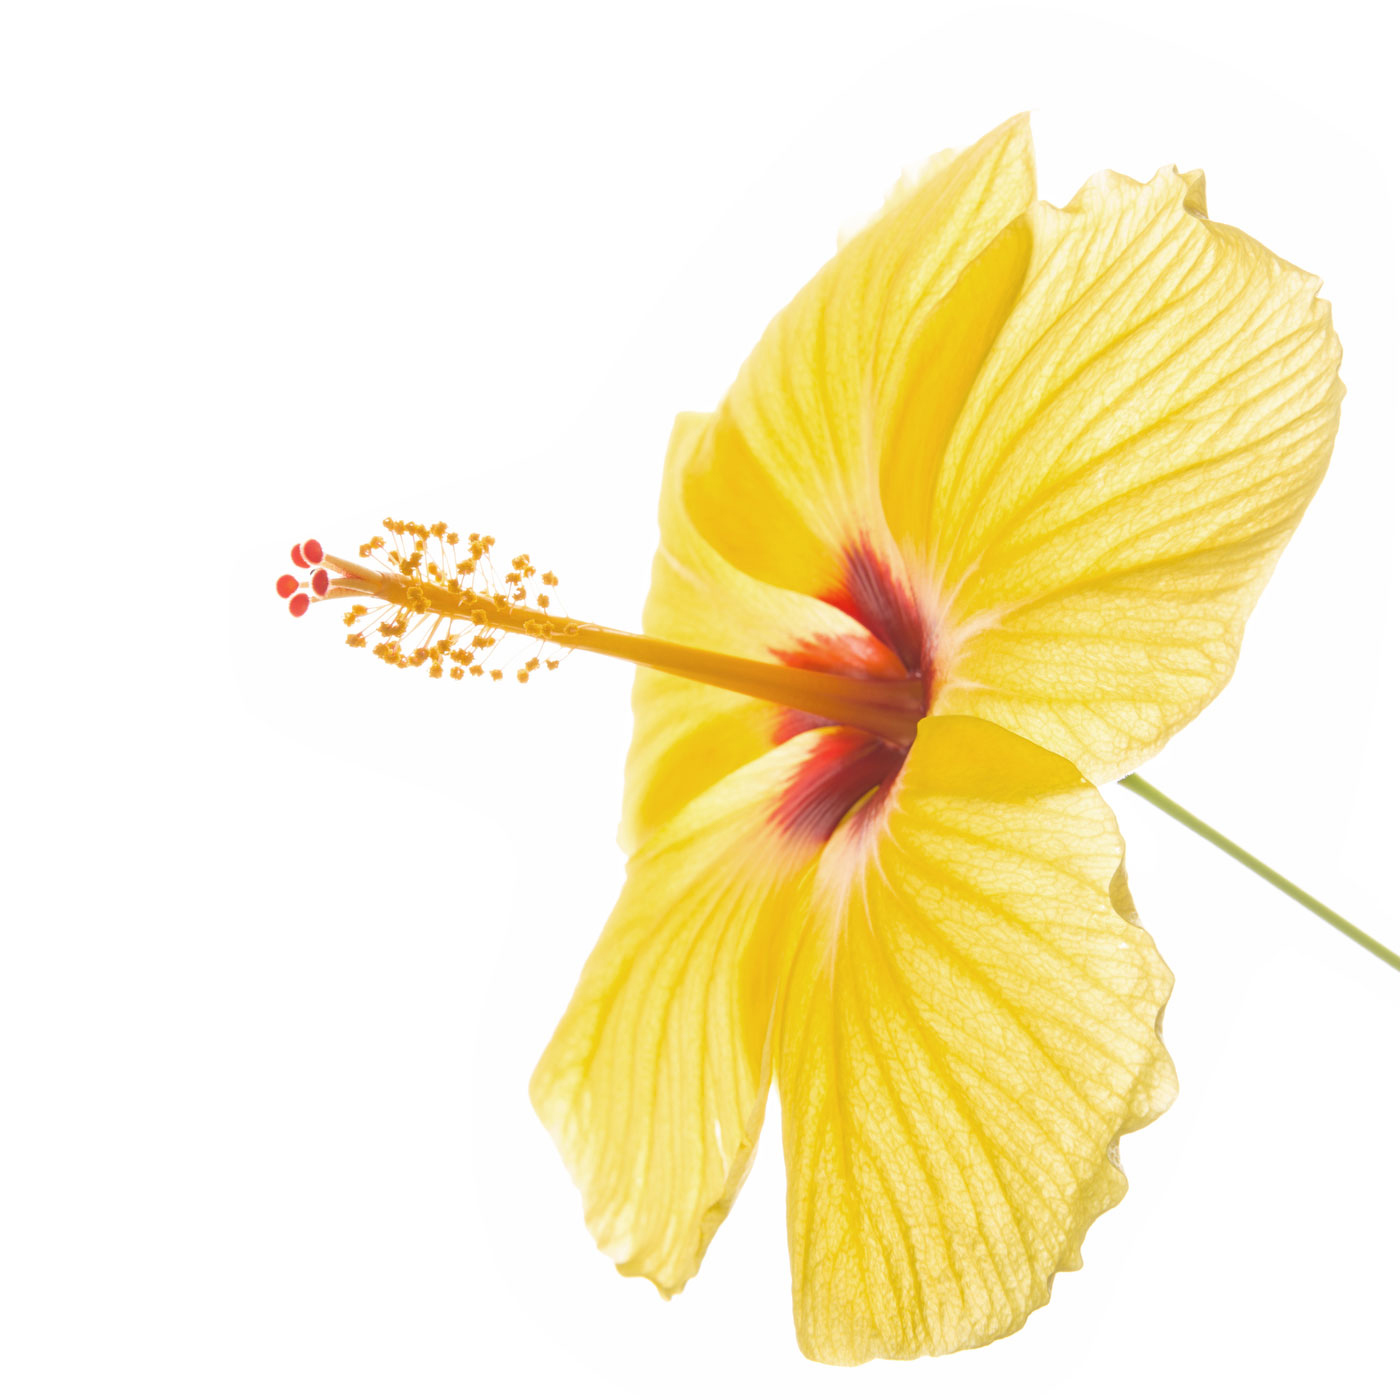 flower, tropical, flora, hibiscus, yellow, photo